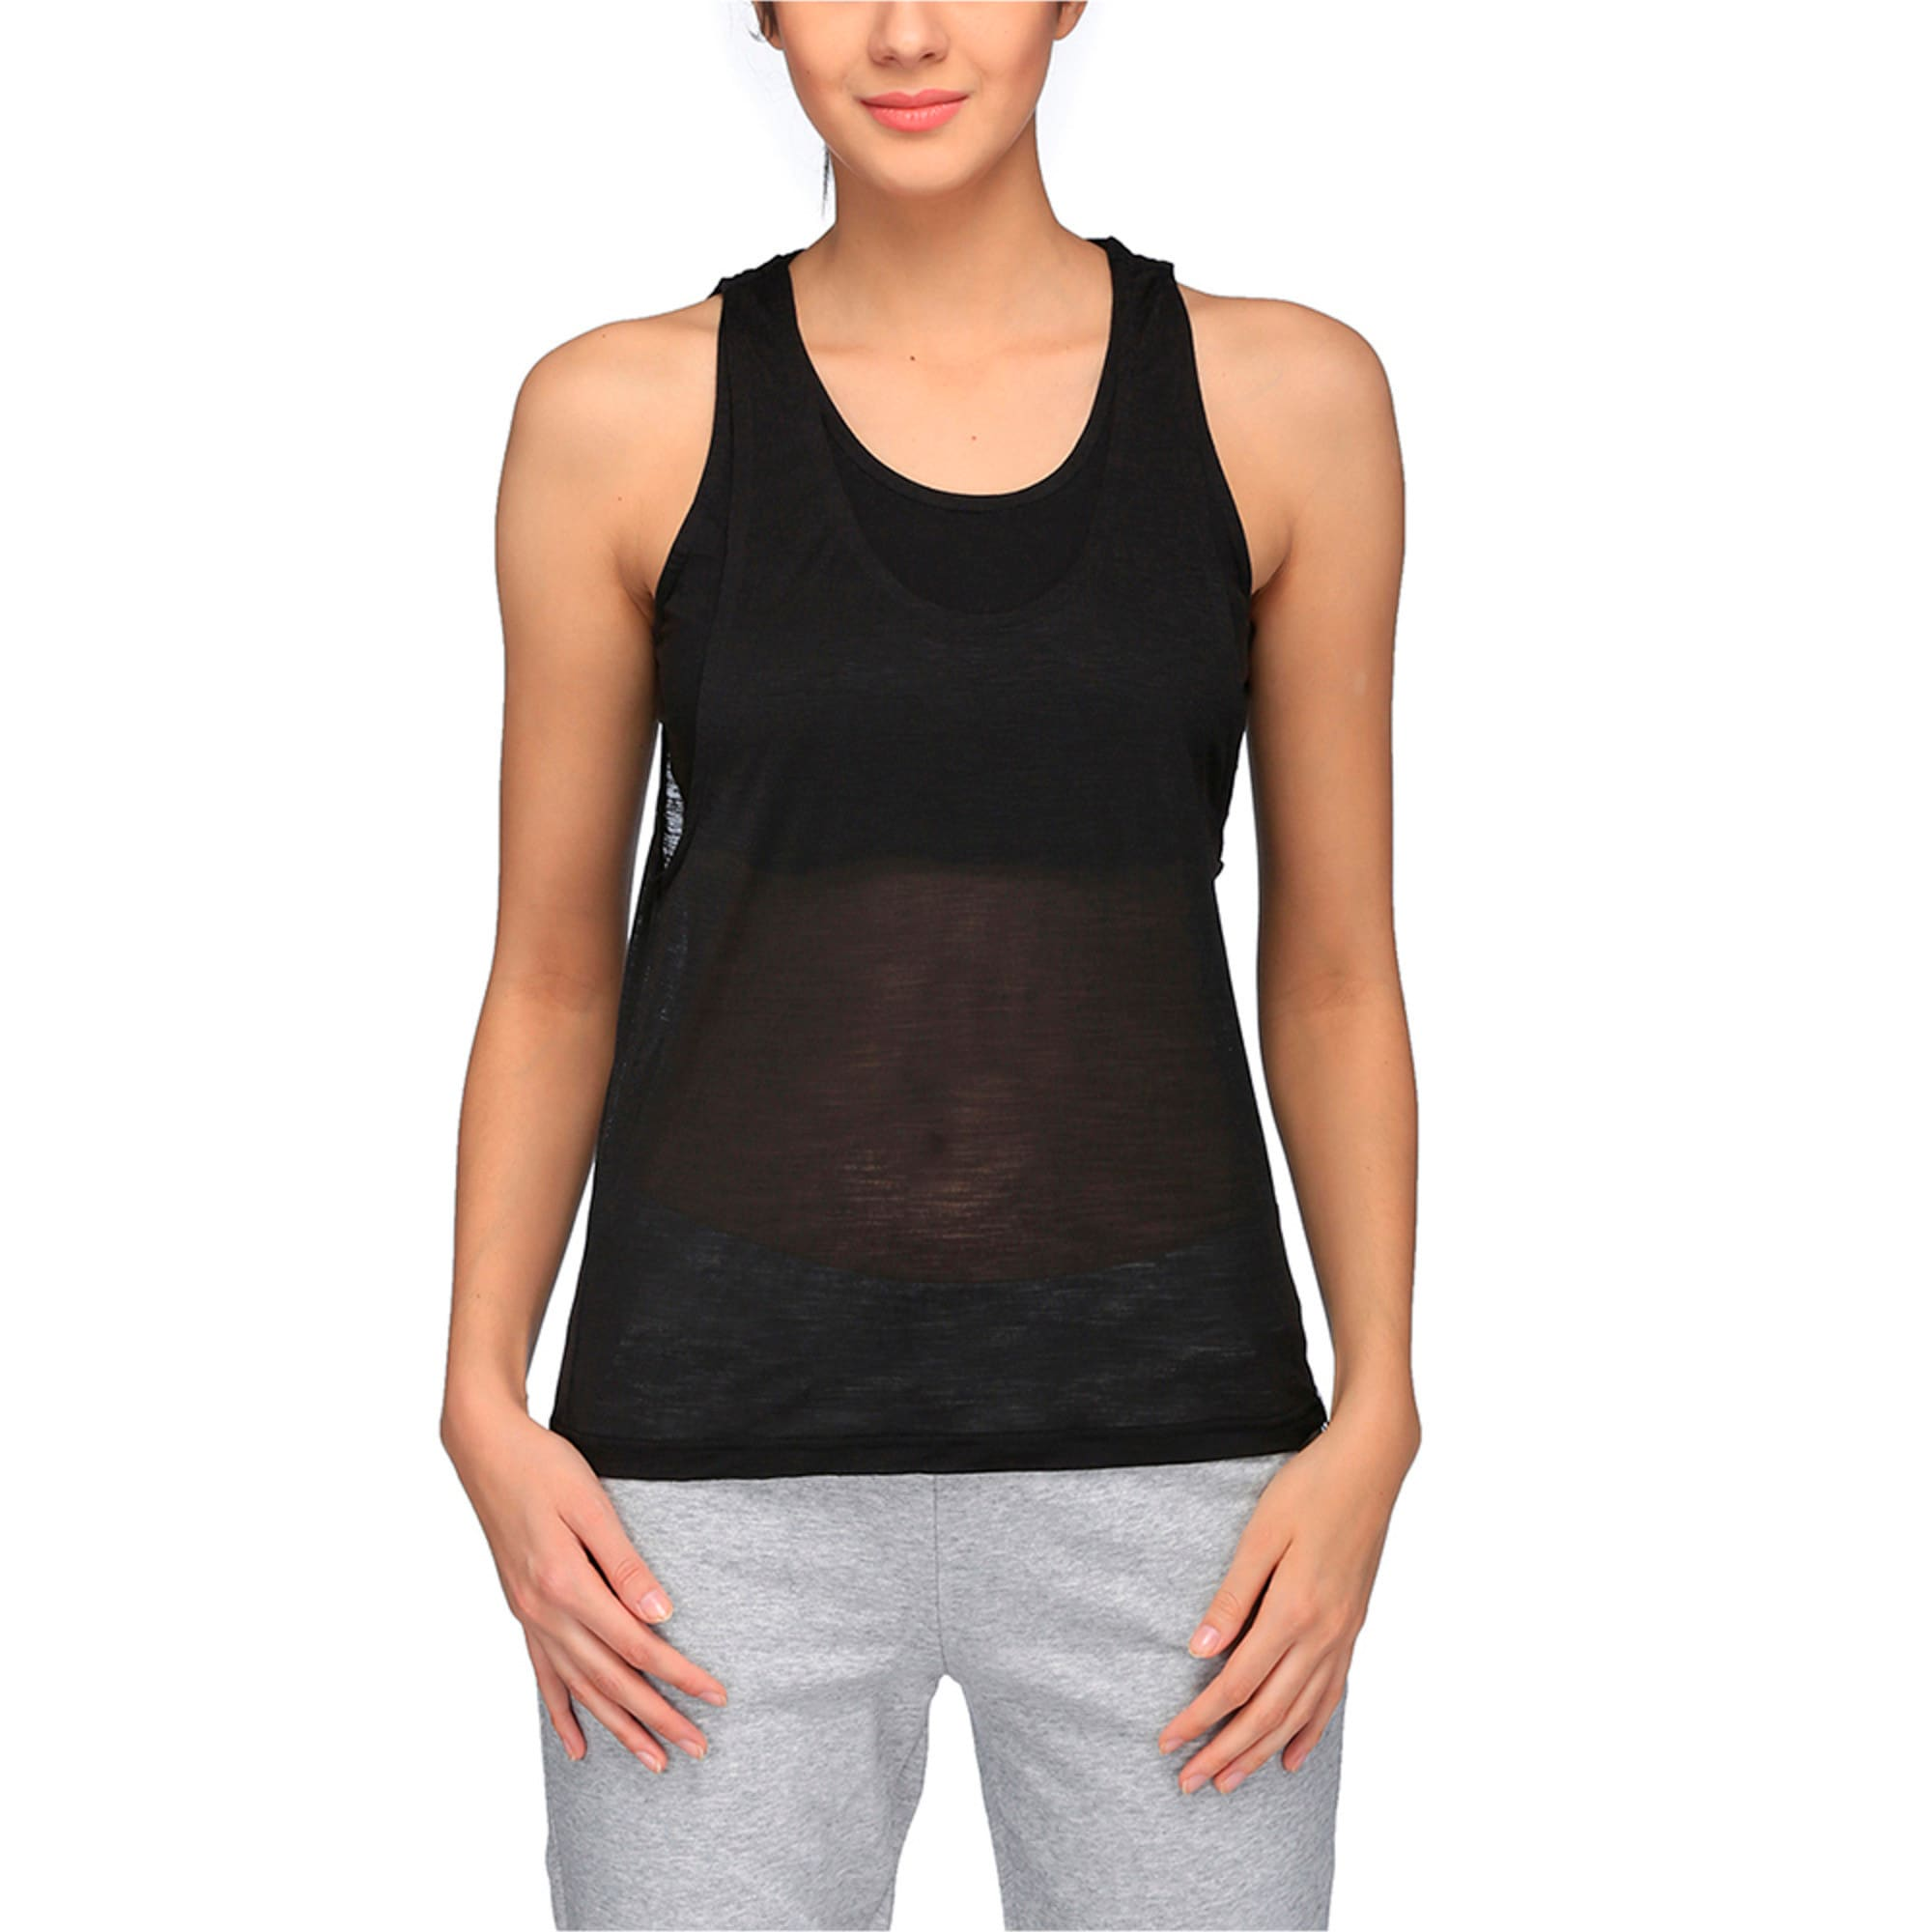 Thumbnail 1 of Archive Women's Overlay Tank Top, Puma Black, medium-IND